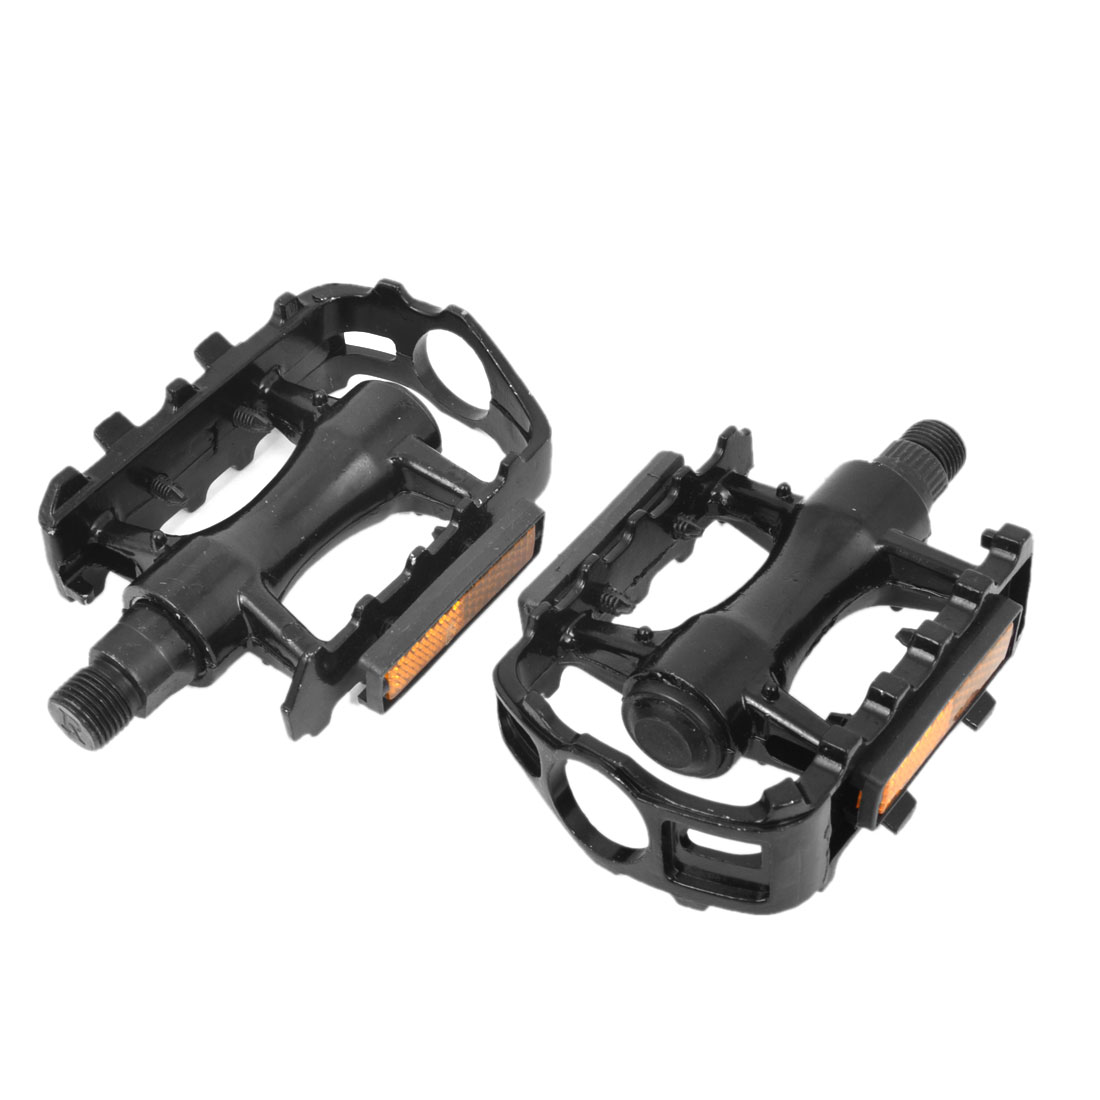 Mountain Road Bike Bicycle Black Aluminium Platform Pedals 2pcs